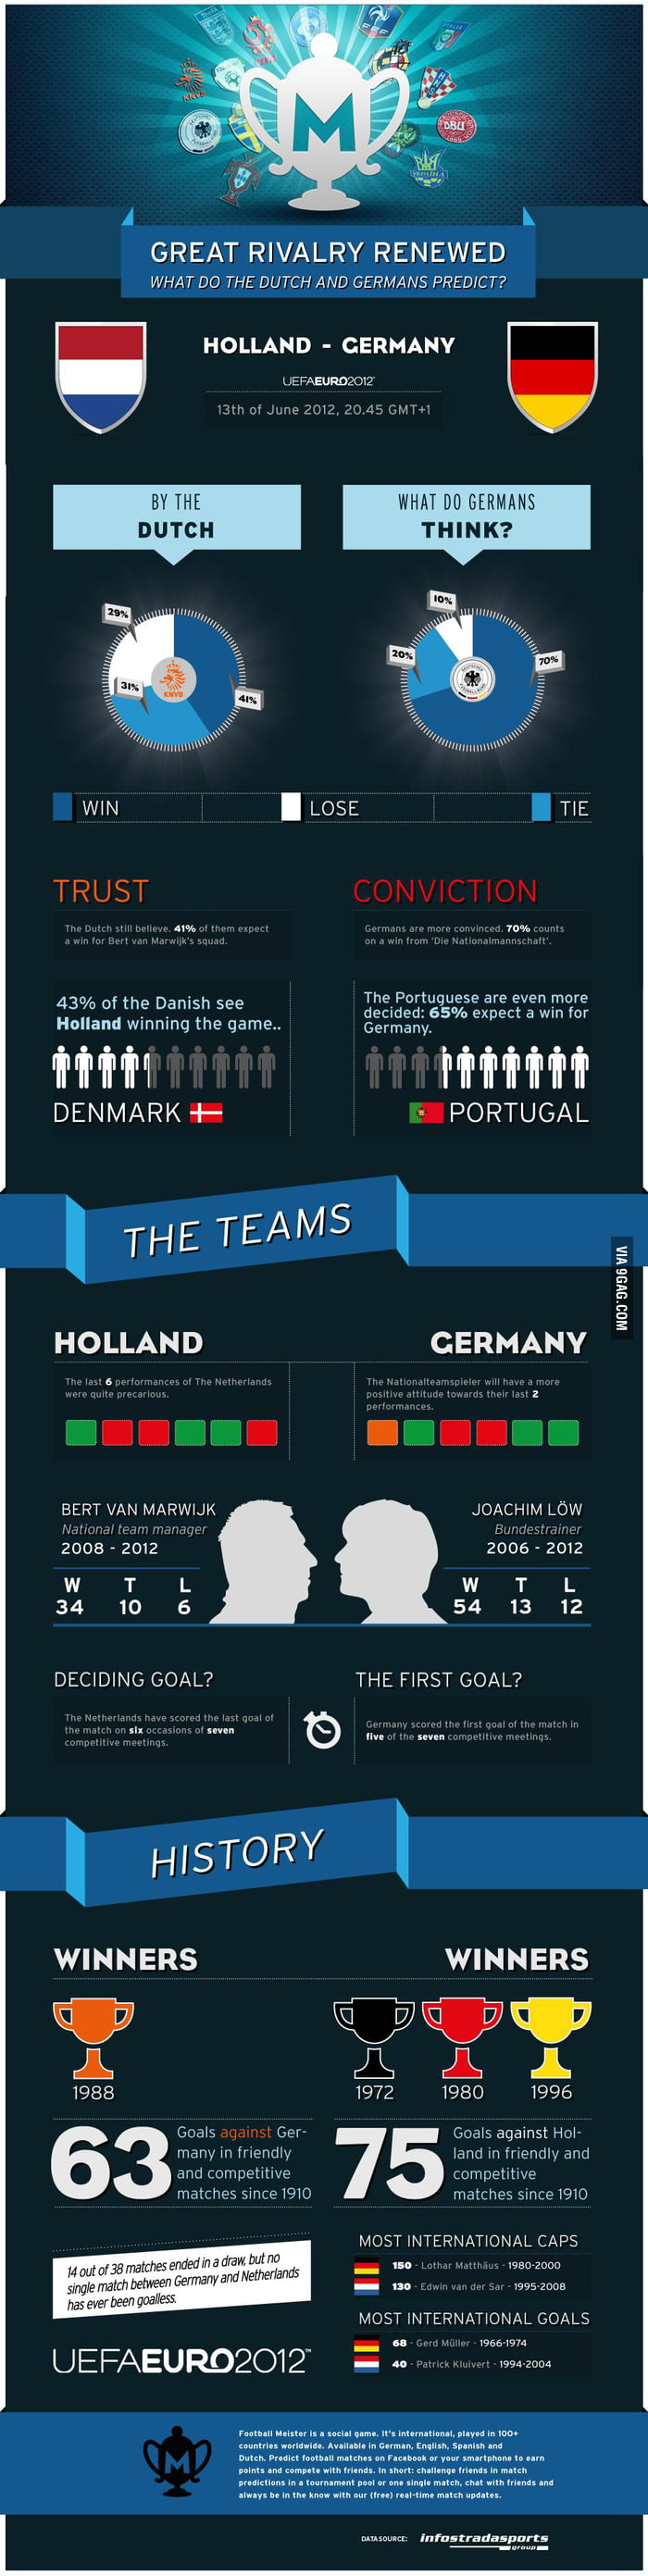 The Netherlands vs Germany